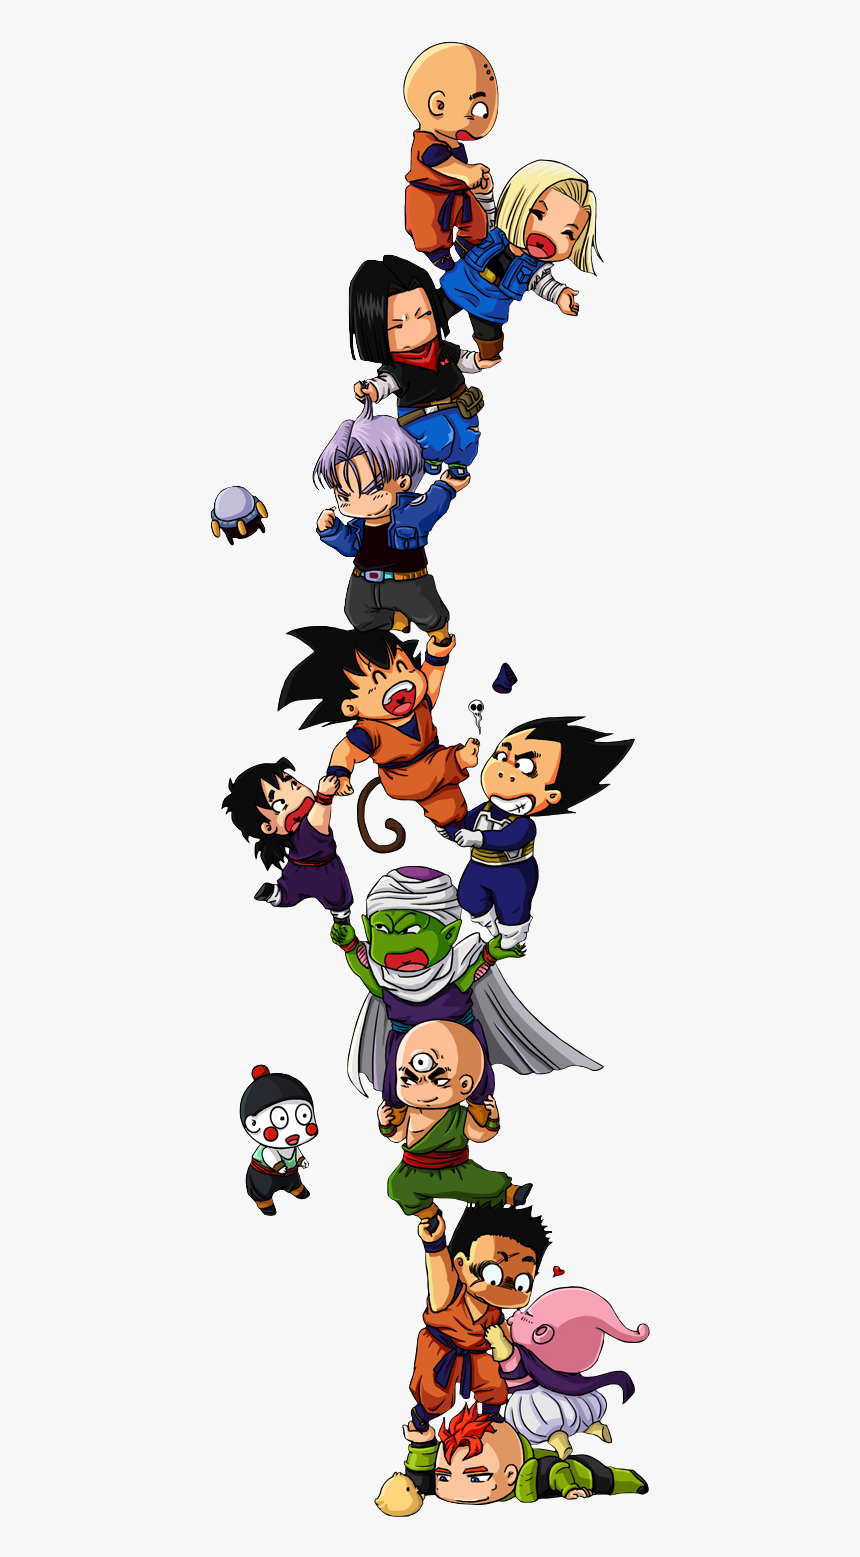 Cute Dragon Ball Characters, HD Png Download, Free Download